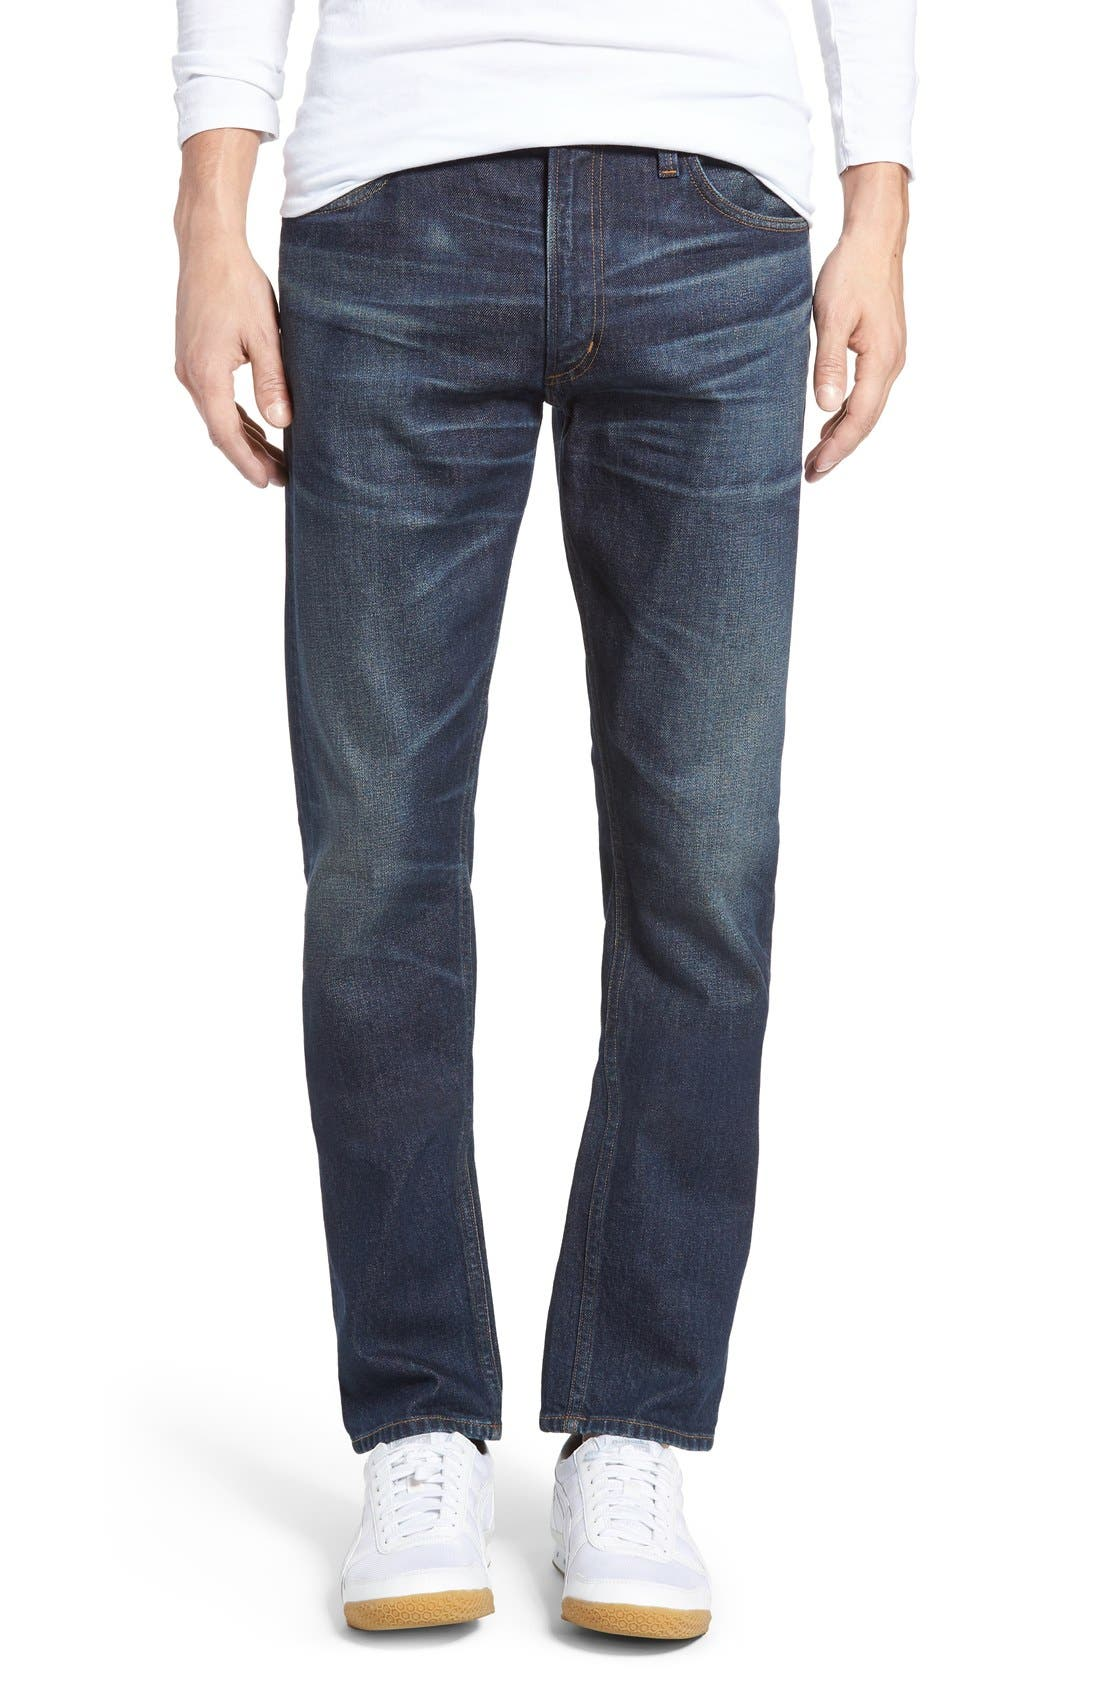 Main Image - Citizens of Humanity Bowery Slim Fit Jeans (Hesperia)